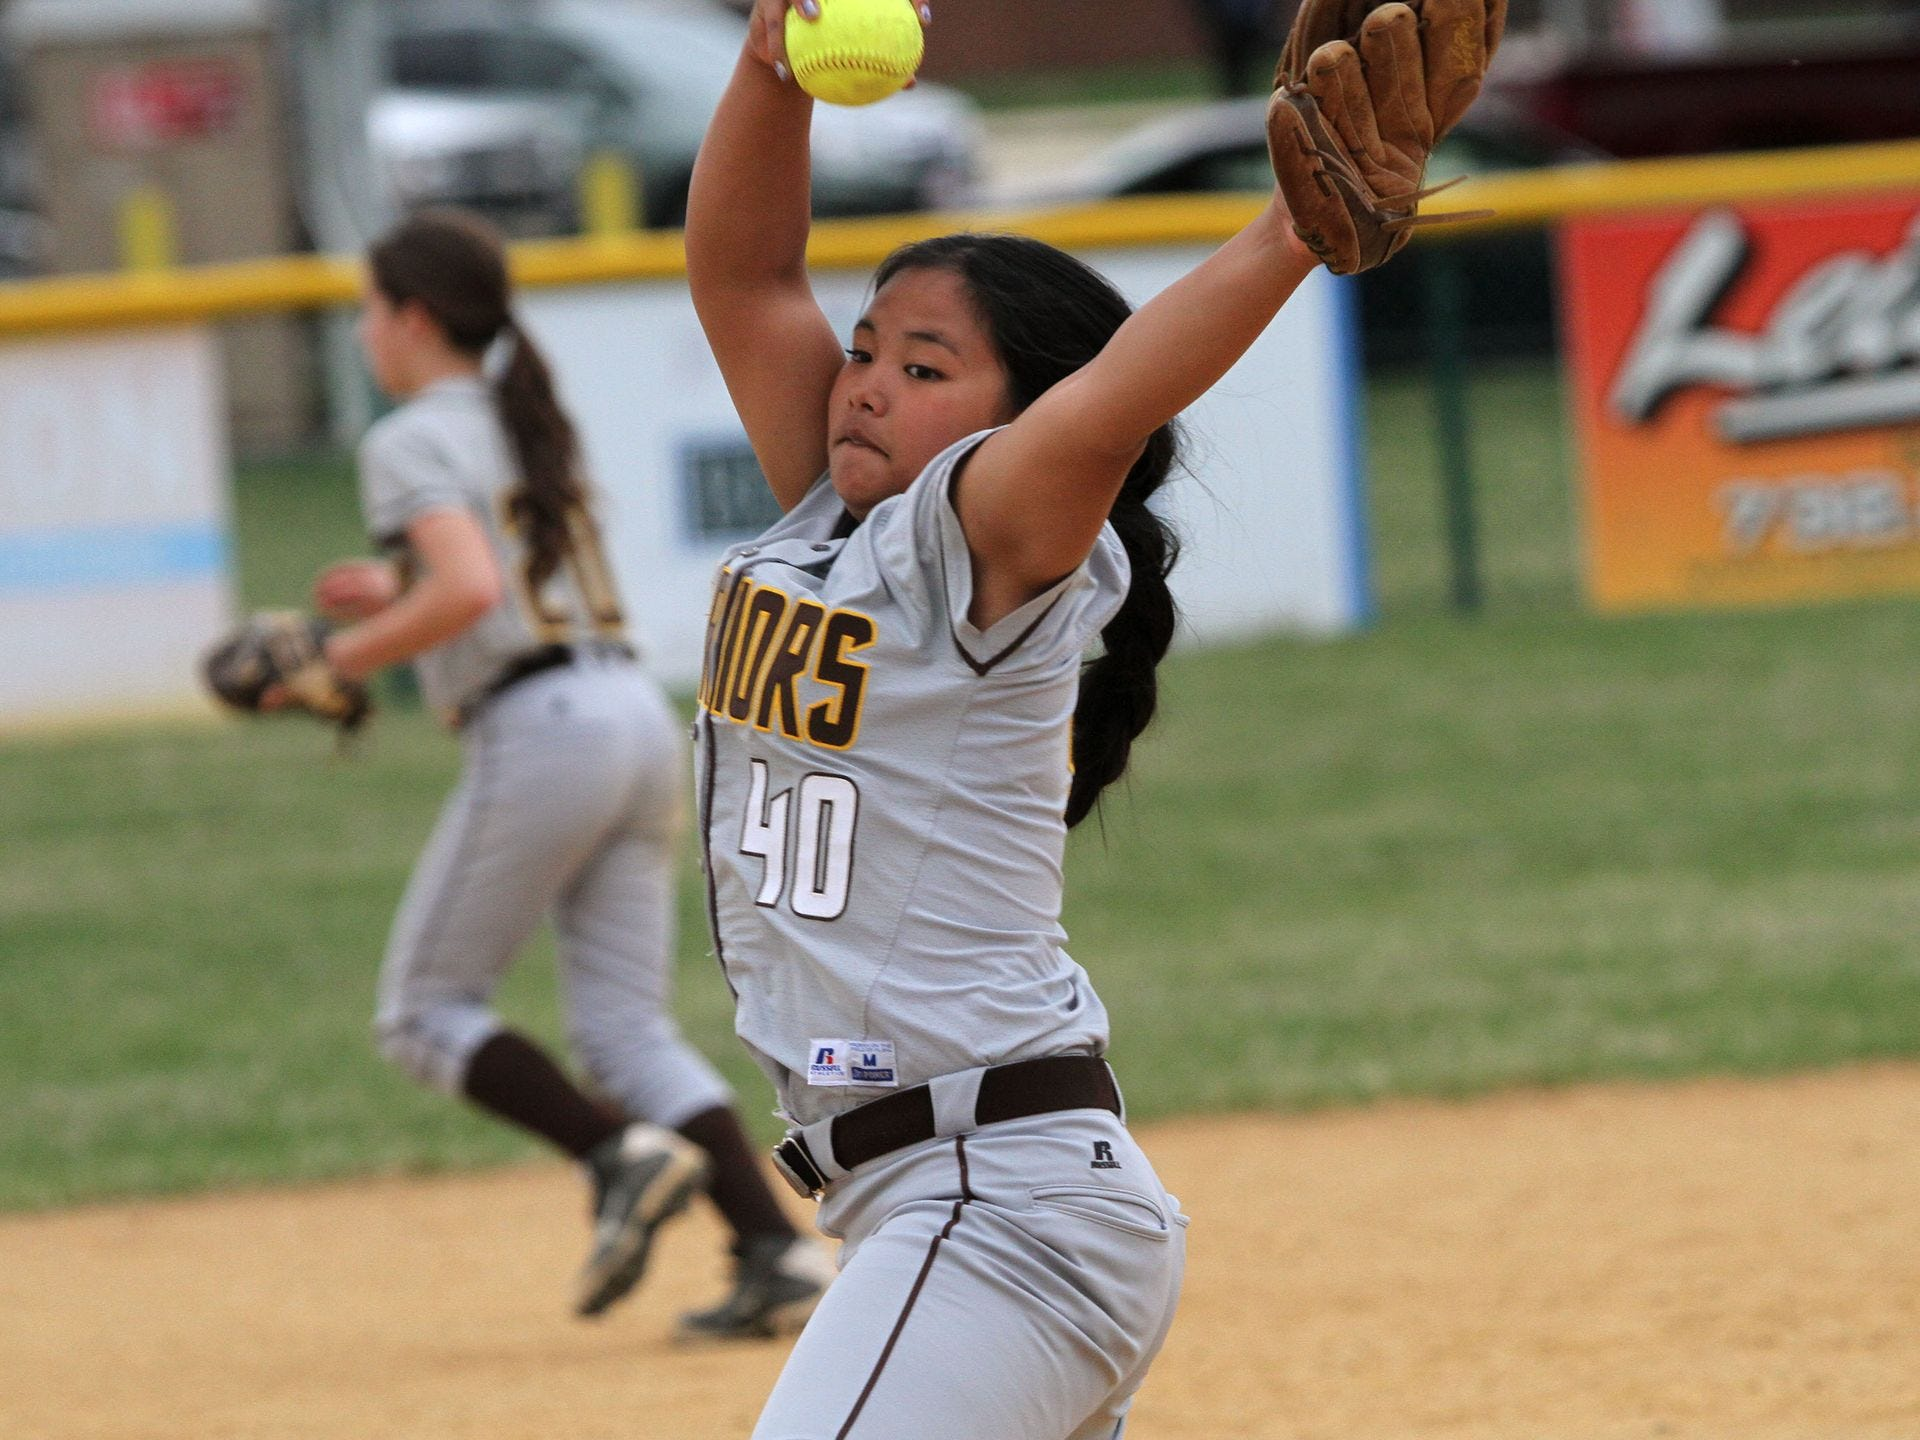 Watchung HIlls freshman righty Robin McCabe enjoyed a very successful first varsity start Tuesday at Montgomery